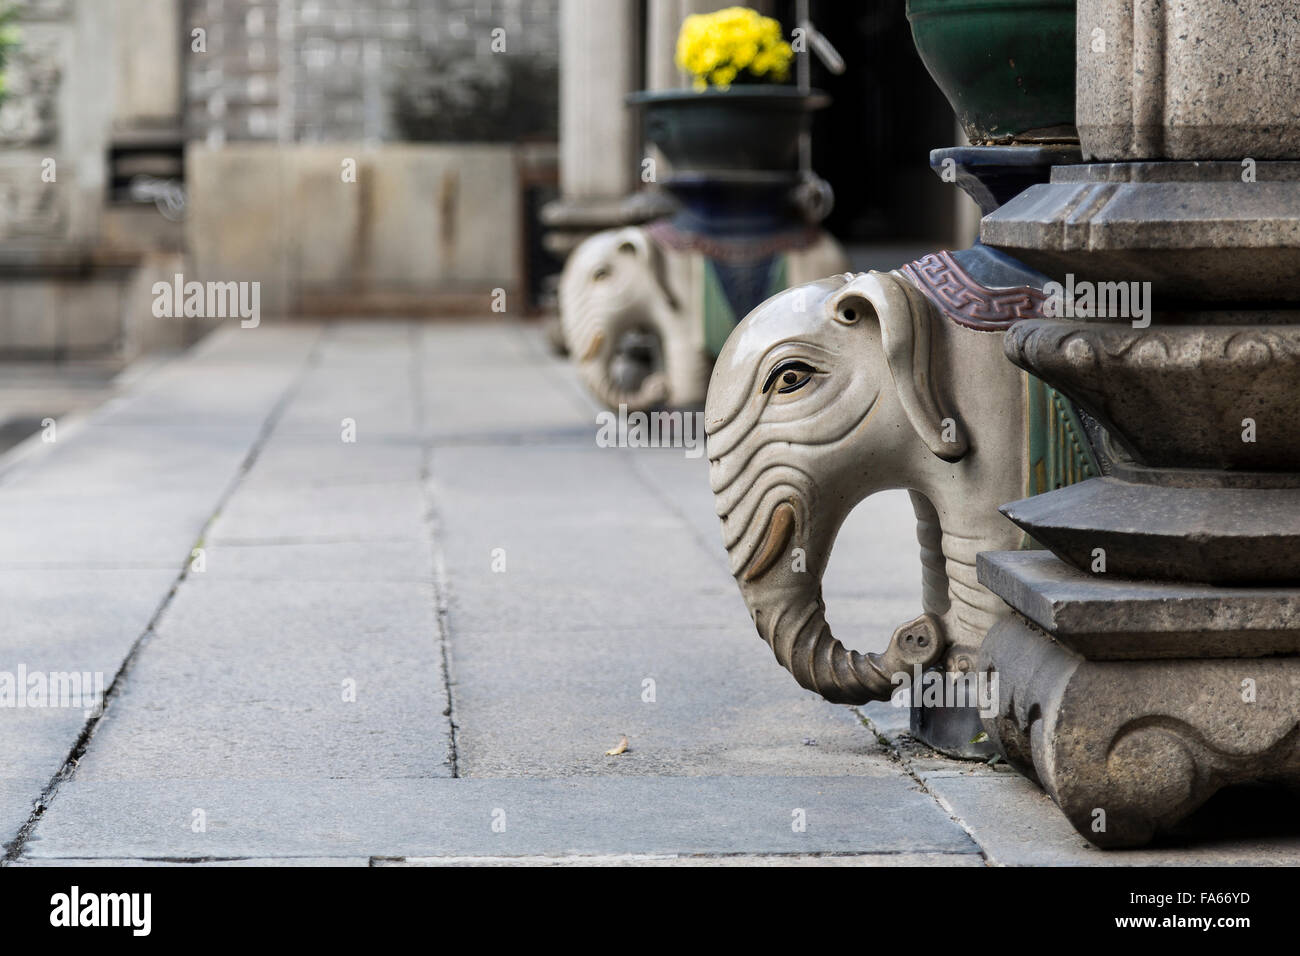 Elephant sculptures decorating the corridors of the Museum of Folk Art, Guangzhou, China. - Stock Image